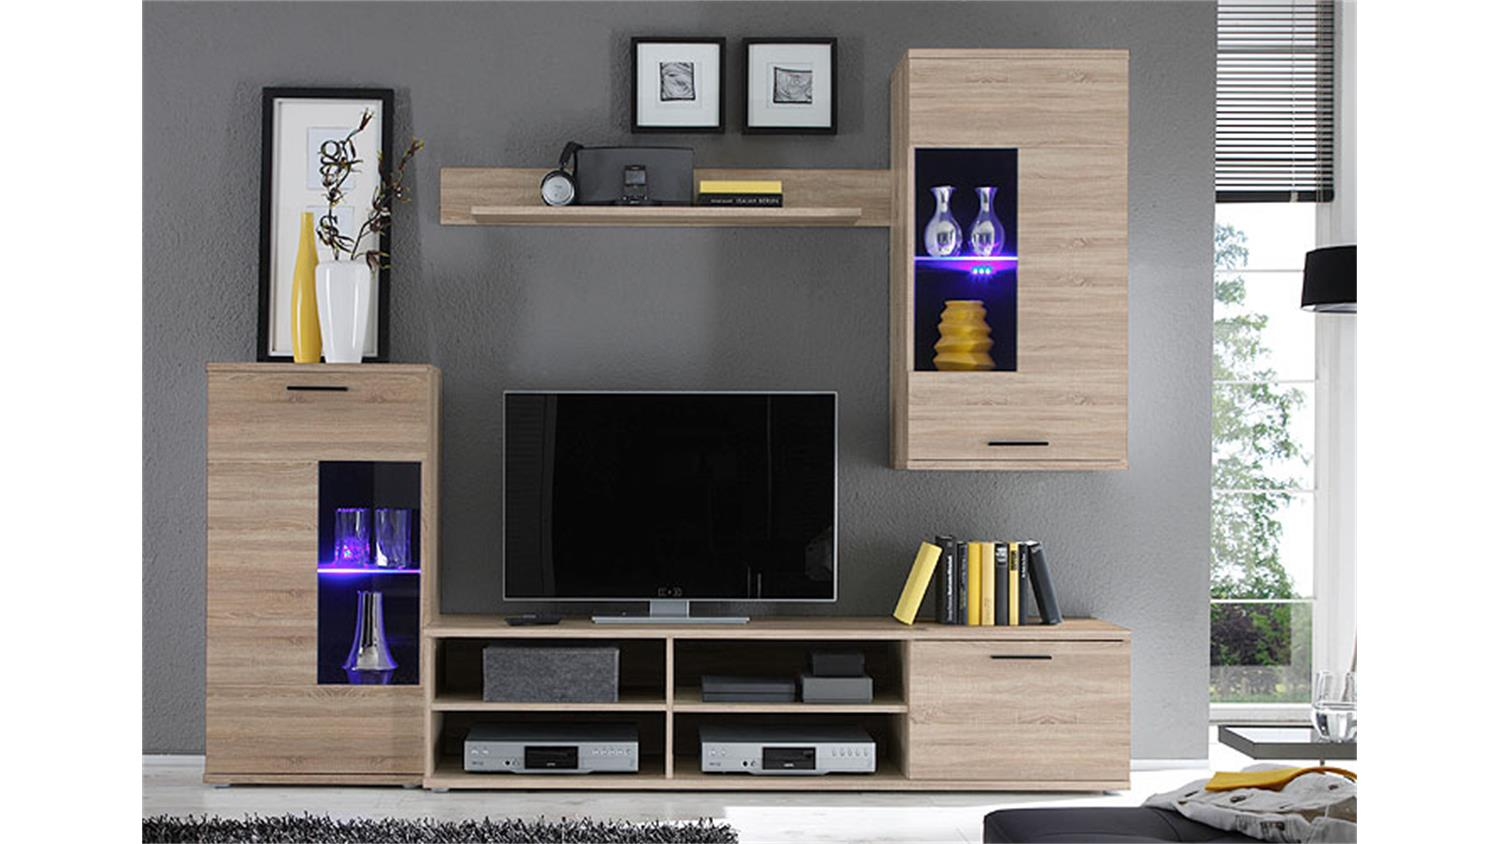 wohnwand frontal in sonoma eiche dekor mit led beleuchtung. Black Bedroom Furniture Sets. Home Design Ideas